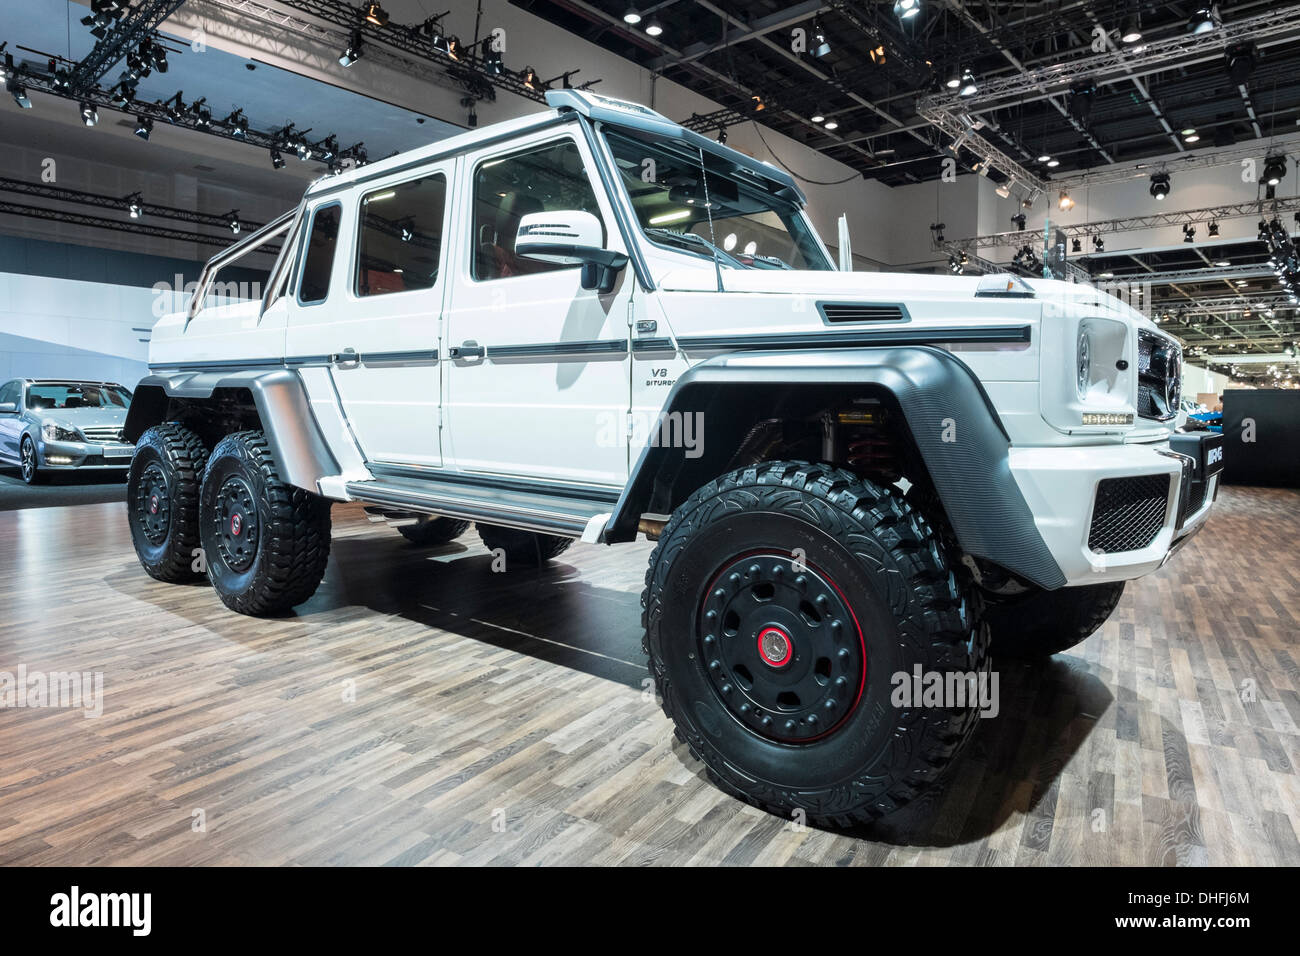 mercedes g63 amg 6x6 vehicle at the dubai motor show 2013 united arab stock photo 62423836 alamy. Black Bedroom Furniture Sets. Home Design Ideas